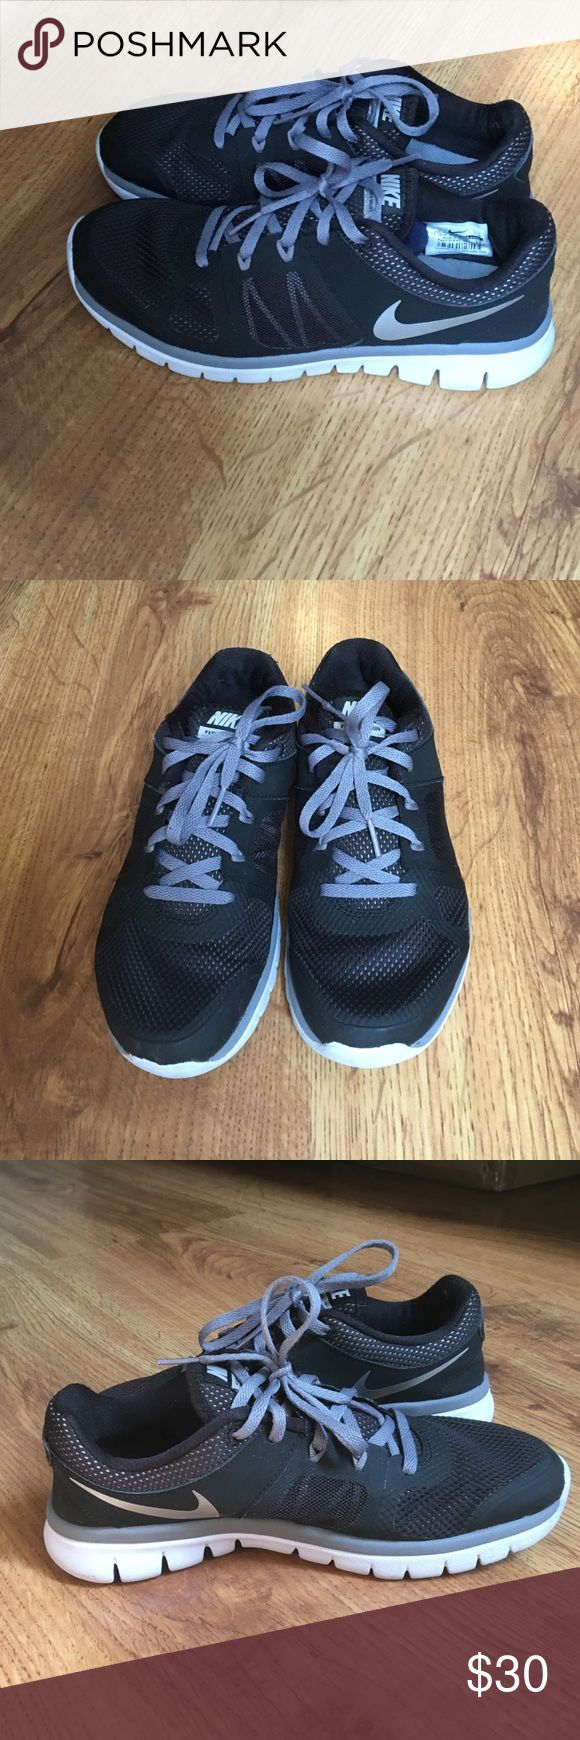 Nike black tennis shoes women's size 7 ➡️Nike black tennis shoes women's size 7 ➡️Women's size 7 ➡️Great for back to school  ➡️GOOD CONDITION  ➡️Super comfortable  ⚡️Fast Shipping  🤑Bundle discounts 🚫No trades🚫 Nike Shoes Athletic Shoes